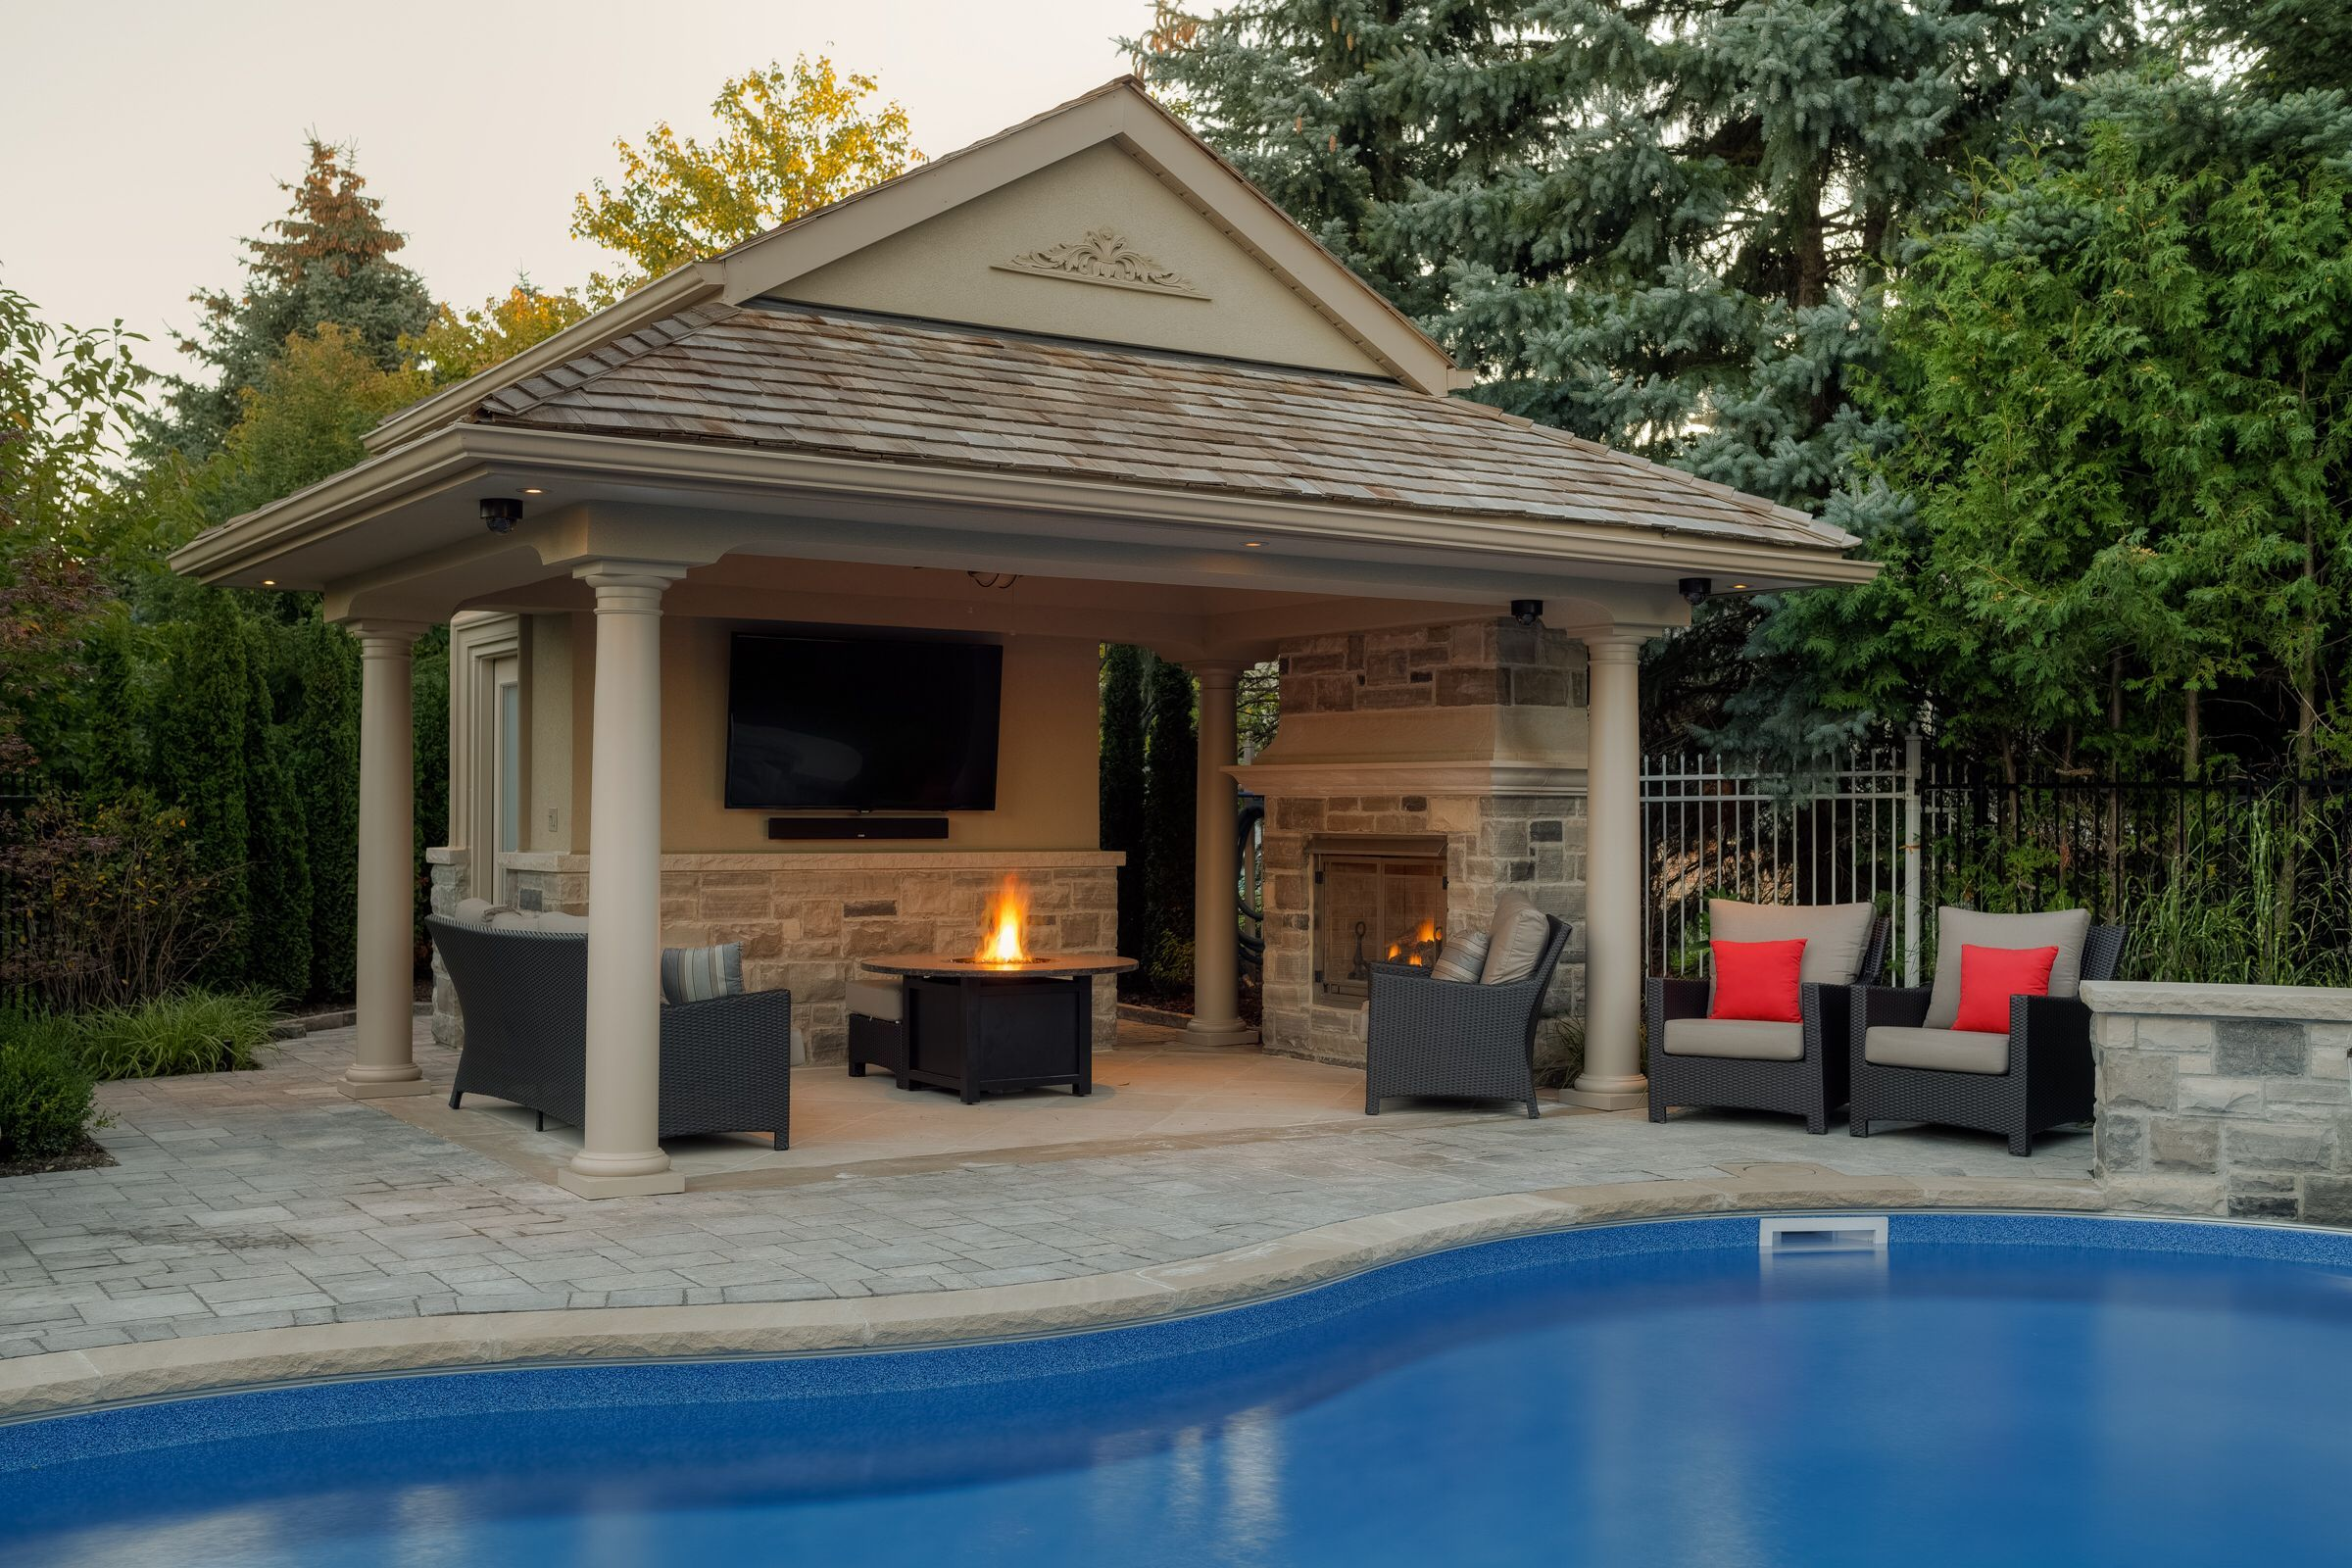 13 Clever Designs Of How To Make Backyard Pool House Ideas Pool House Designs Pool Gazebo Pool House Plans